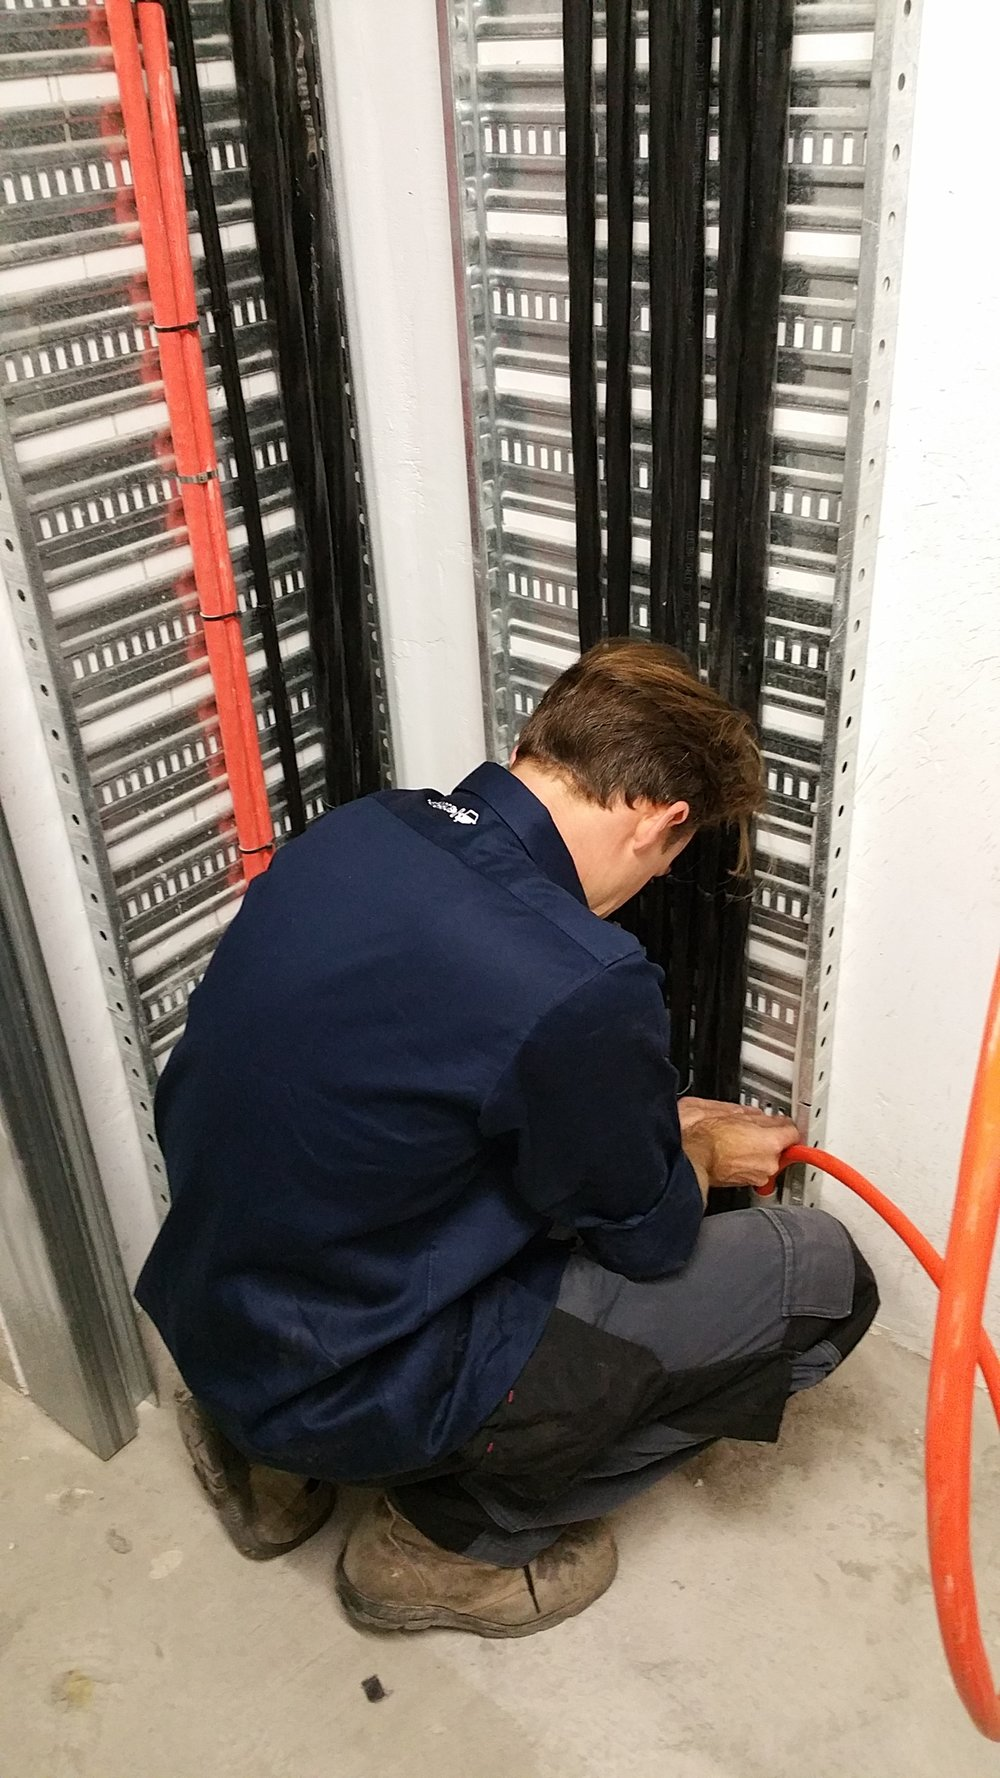 All our technicians are specially trained